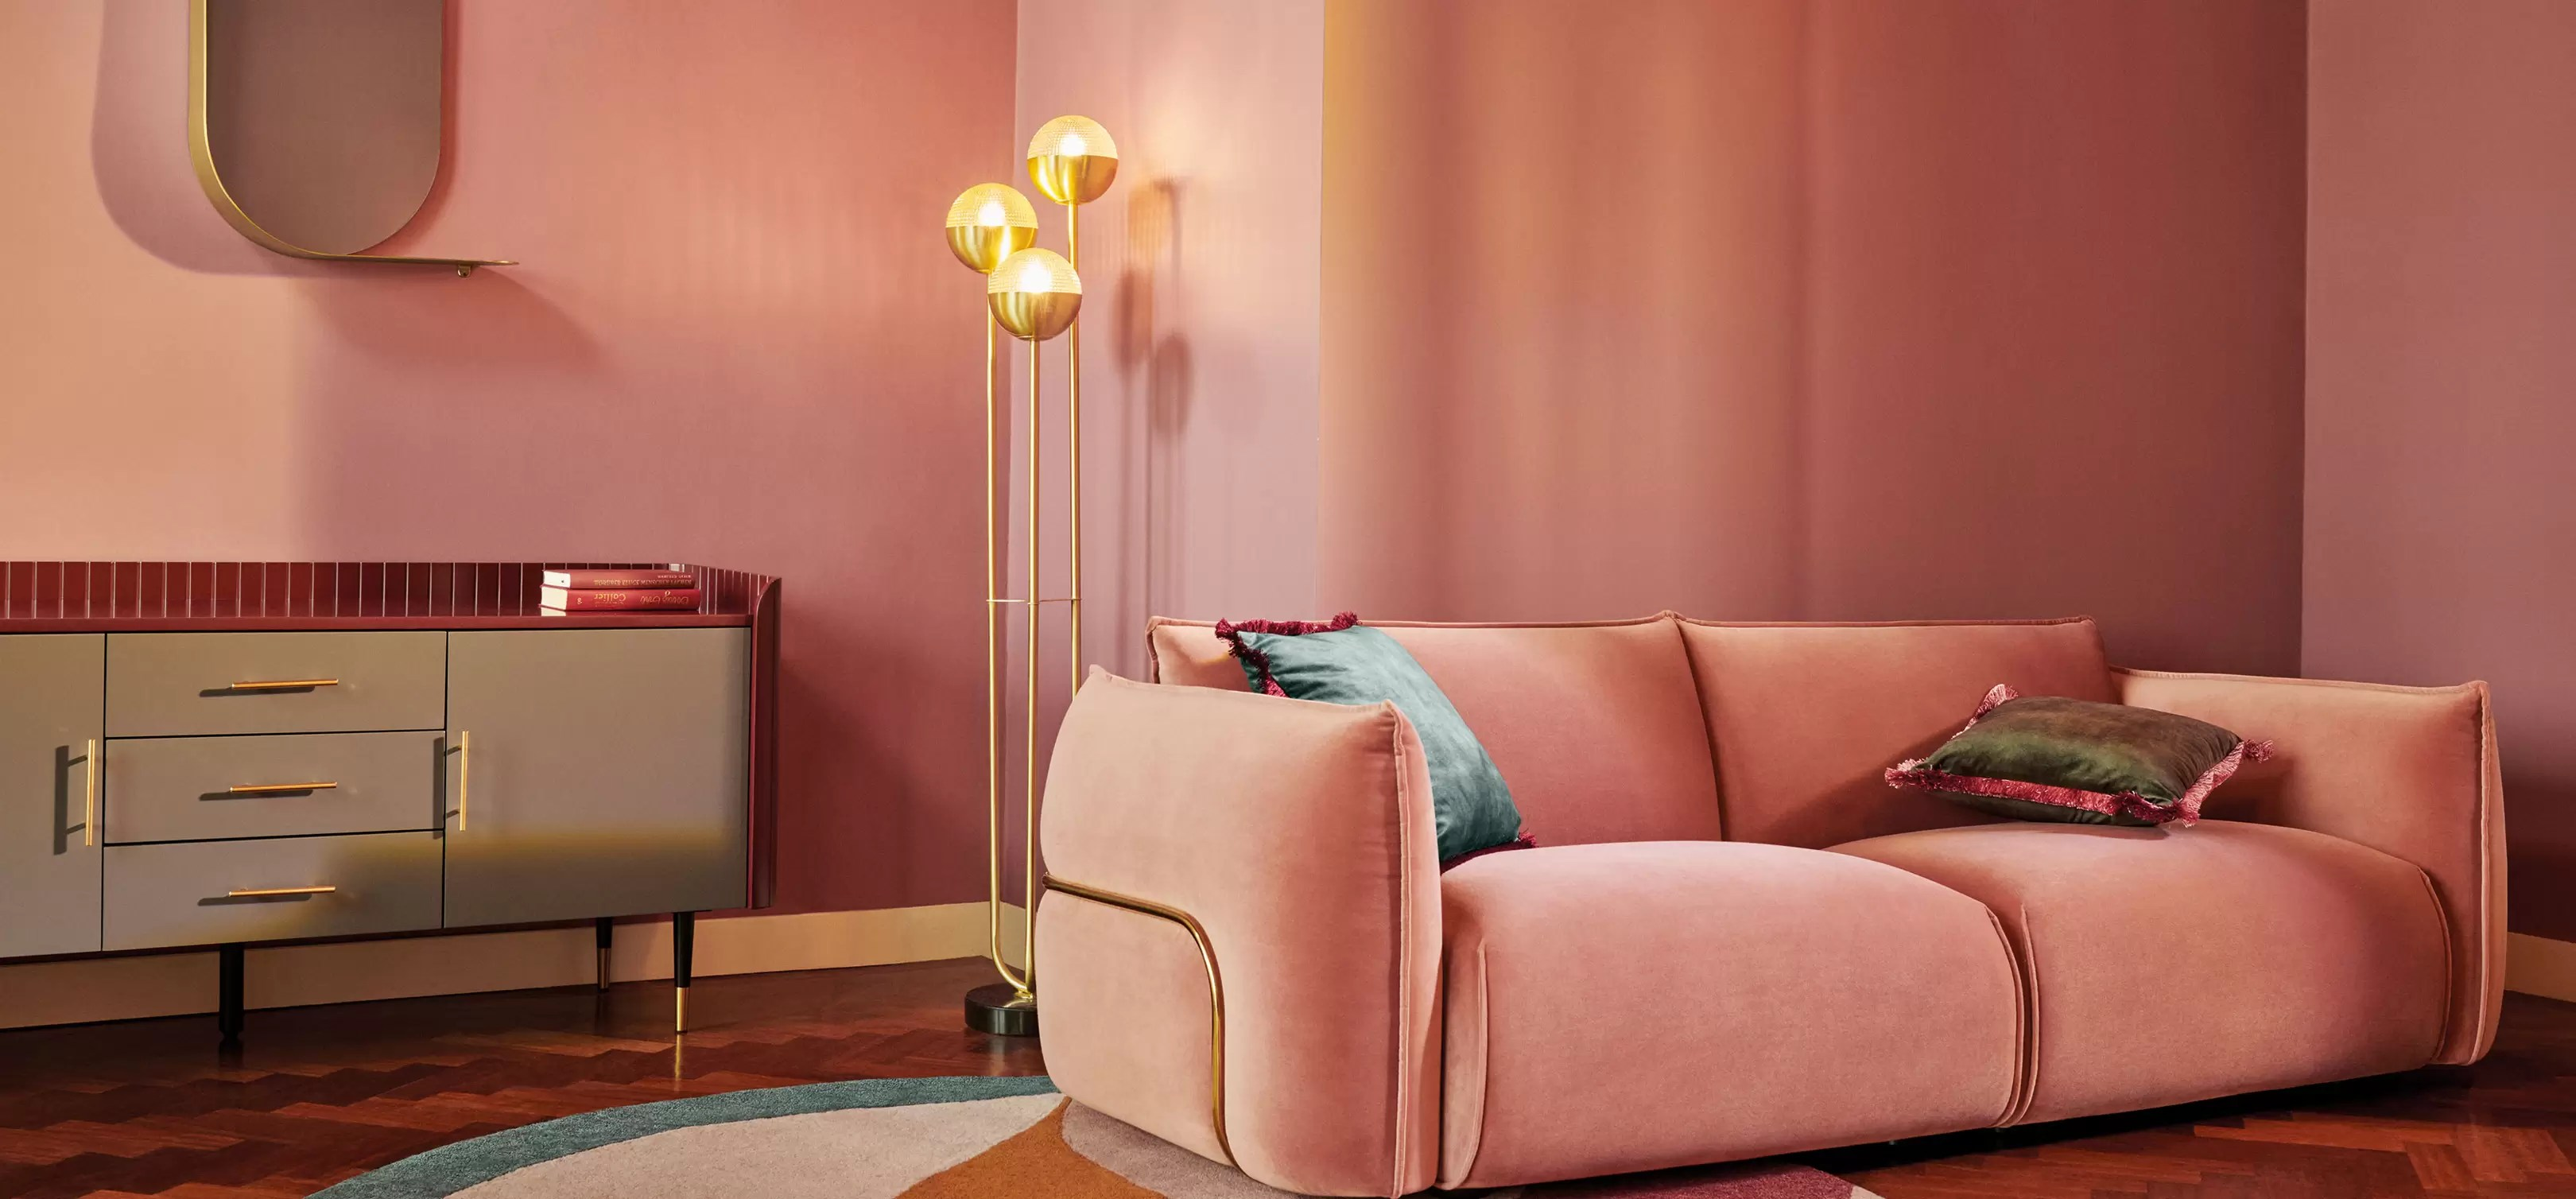 23 Best Online Furniture Stores Interiors Homeware For Every Budget Glamour Uk